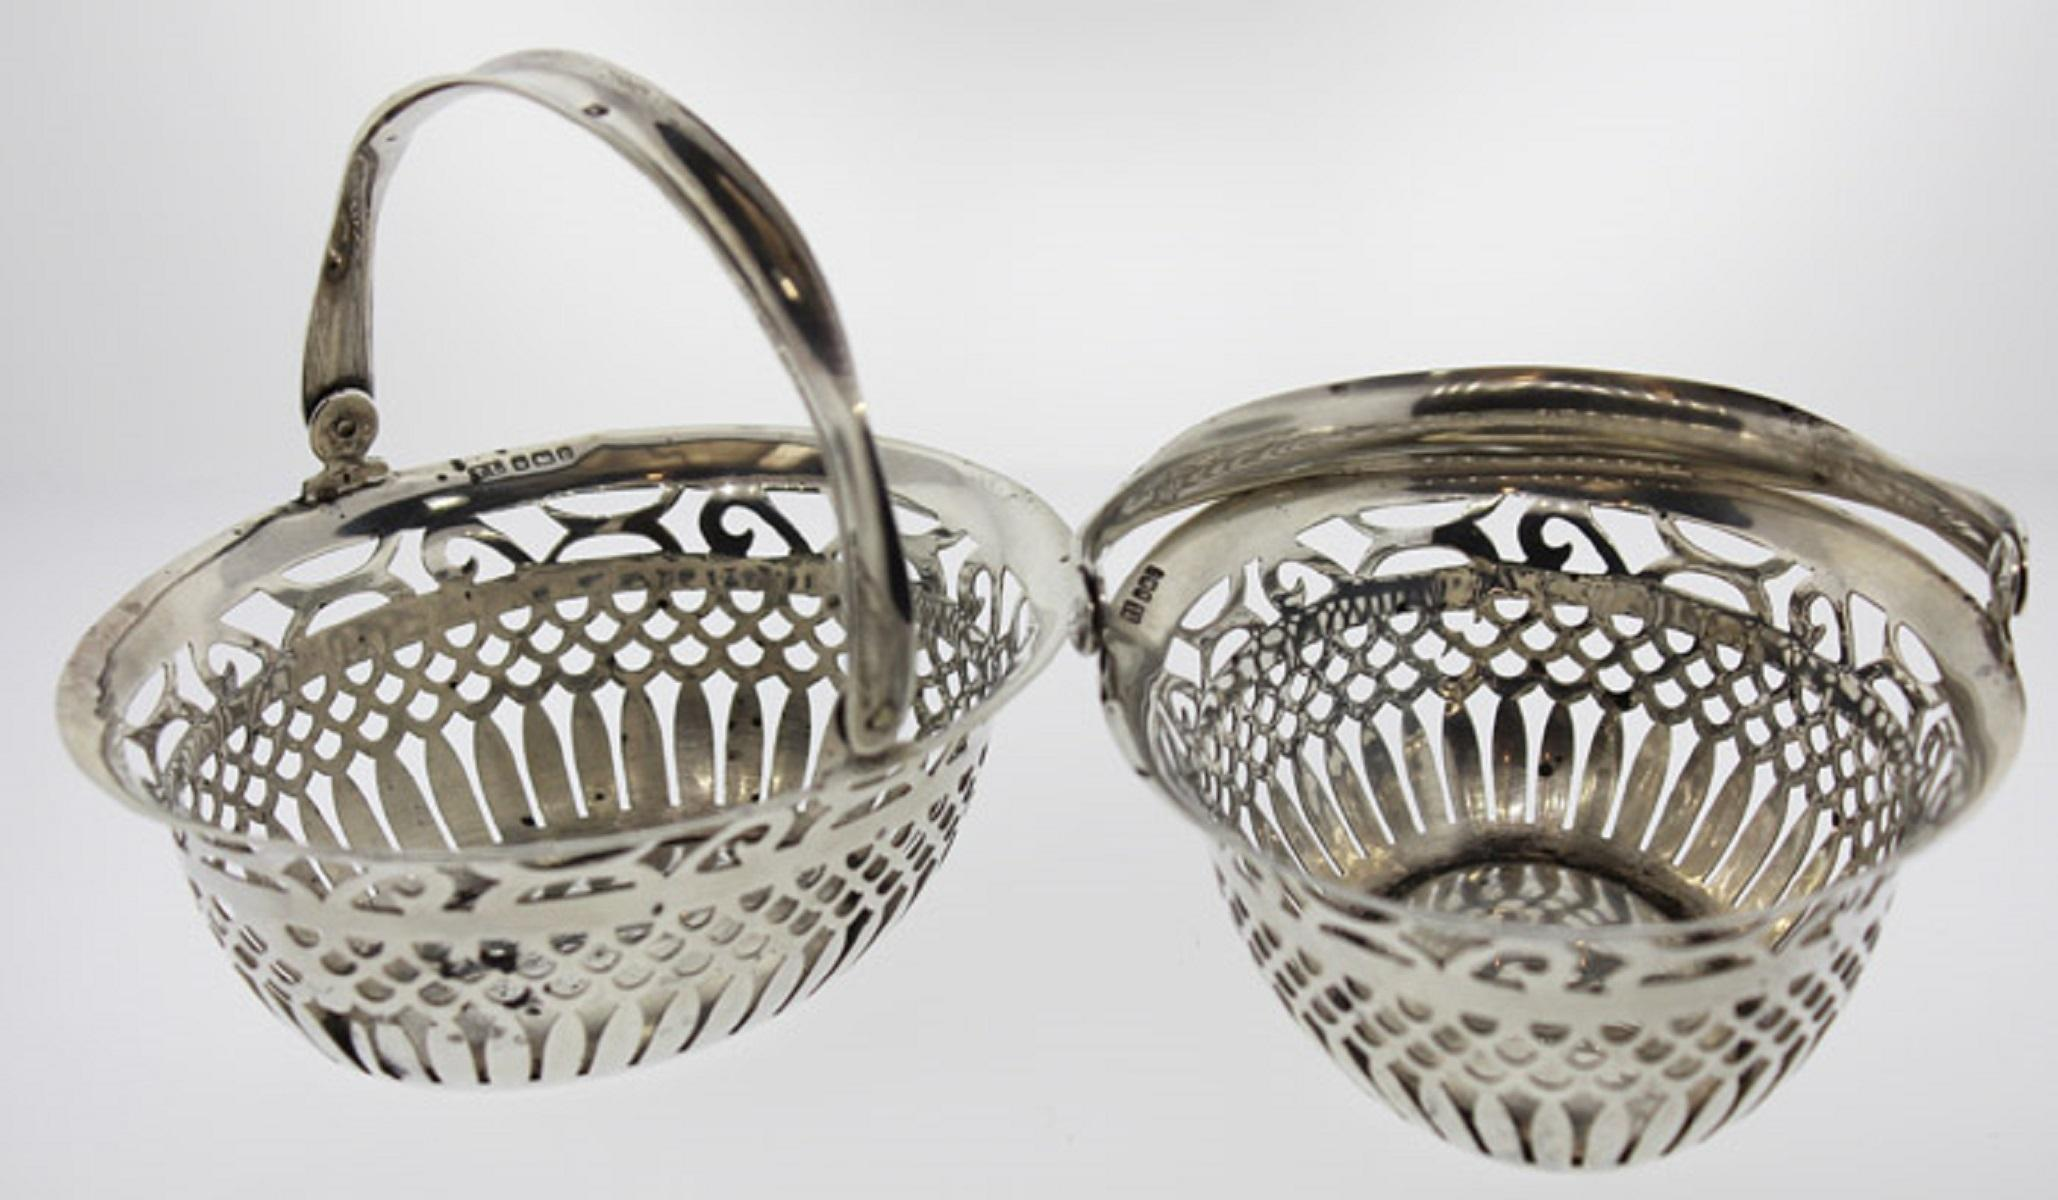 Matching Antique Sterling (0.925) Silver Baskets